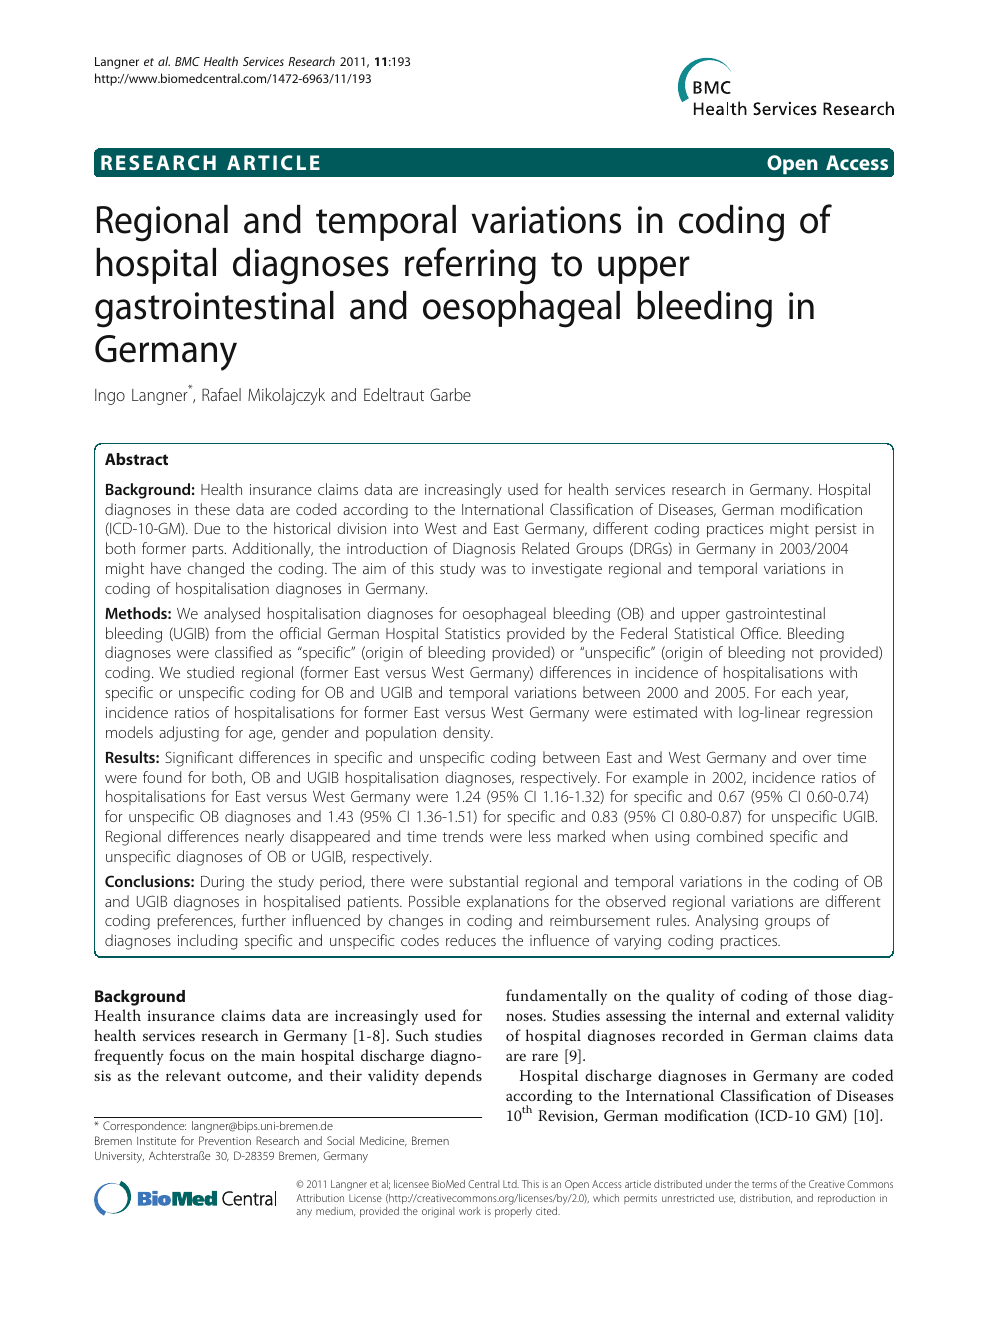 Regional And Temporal Variations In Coding Of Hospital Diagnoses